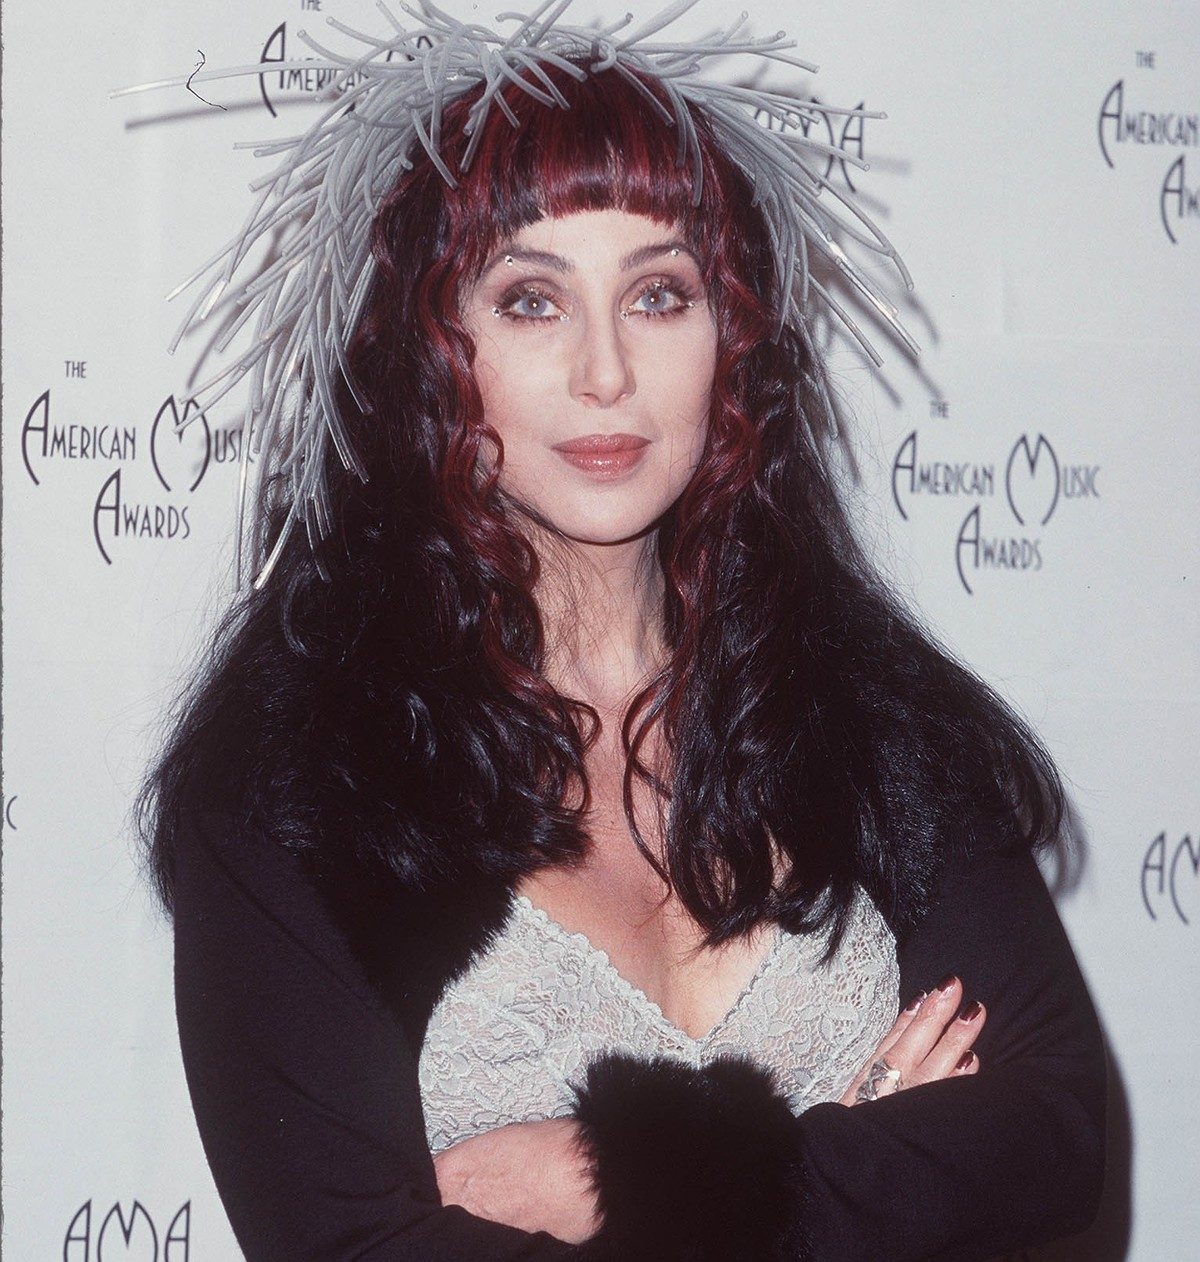 Cher wears an odd headpiece and has her arms crossed and a straight face.